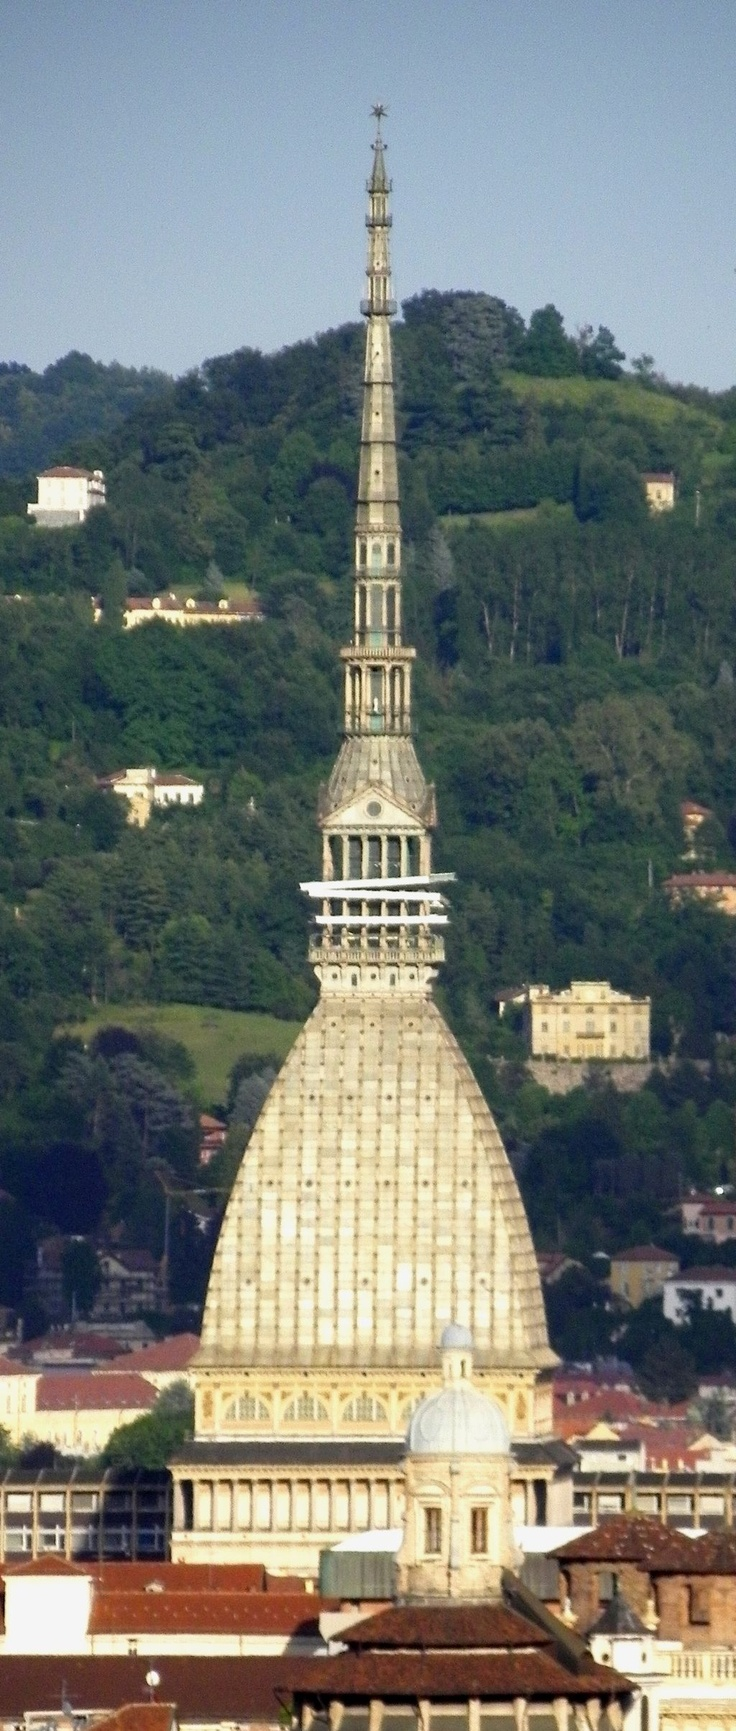 Torino: Mole Antonelliana, symbol of the city, Italy Piemonte